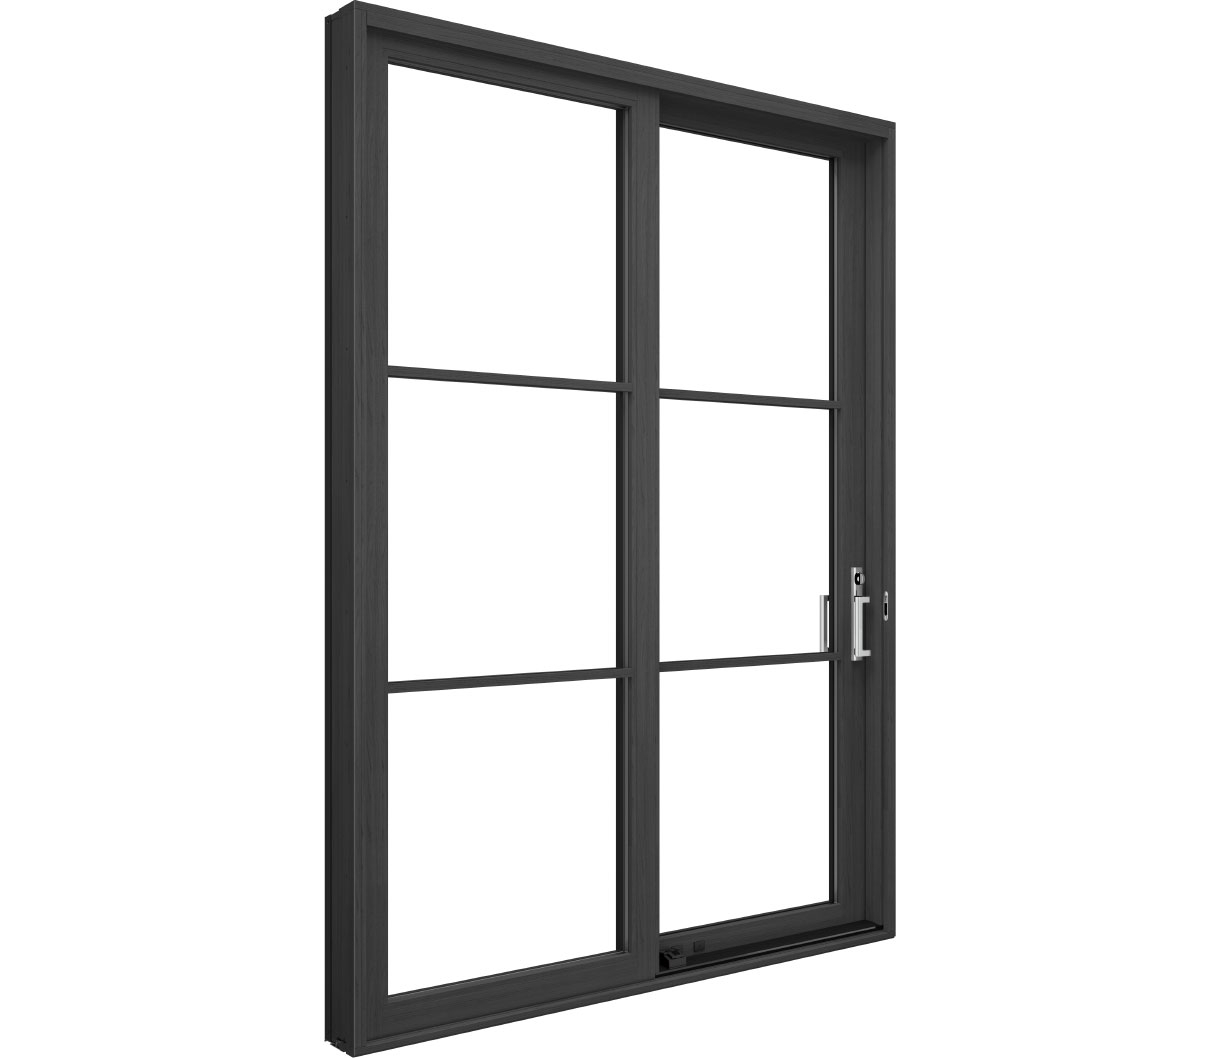 ASC_sliding-door-angled-cob